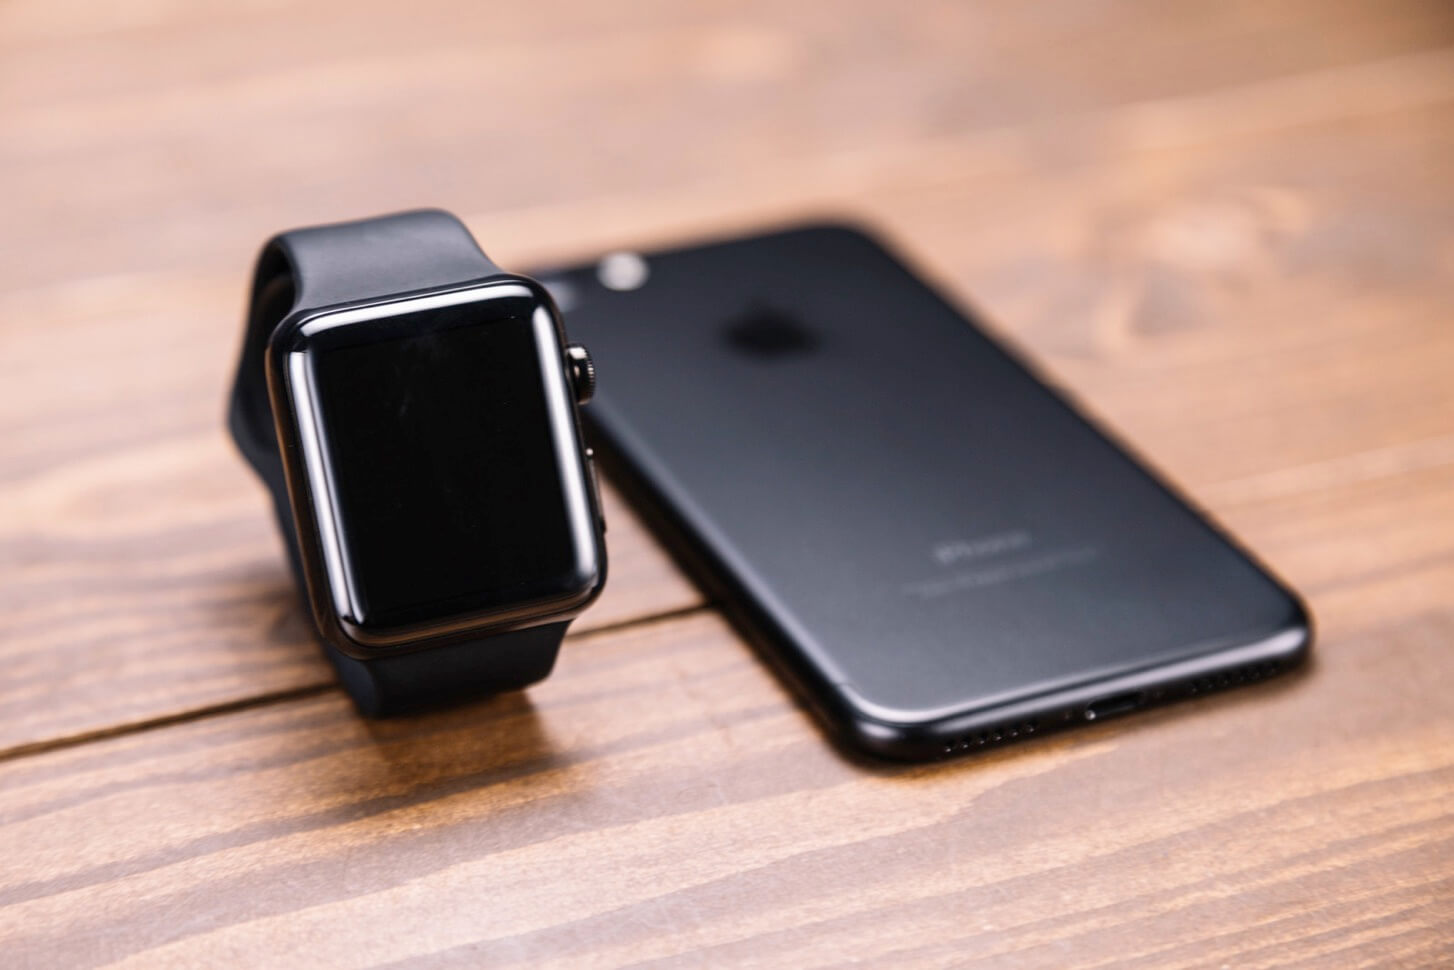 IPhone applewatch